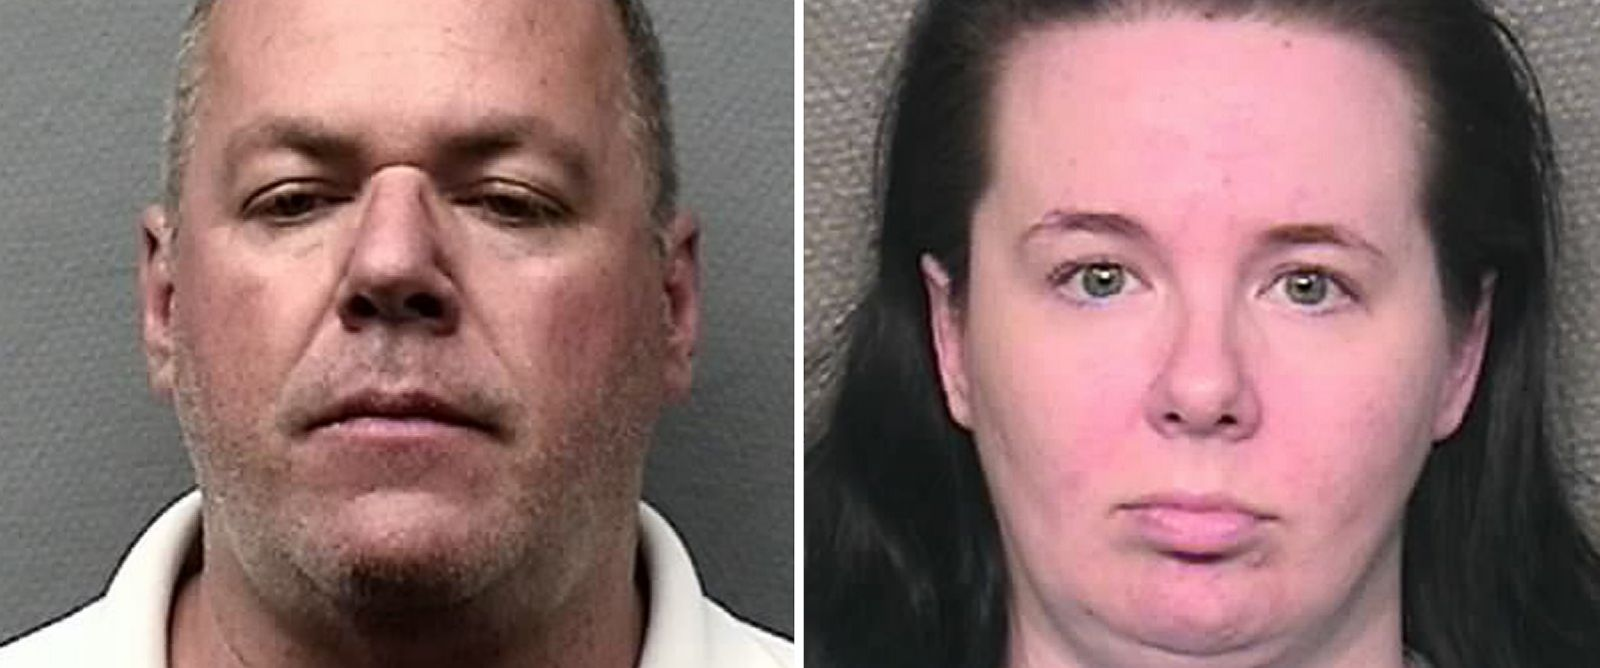 PHOTO: United Airlines pilot Bruce Wayne Wallis, 51, and his alleged accomplice, 37-year-old Tracie Tanner, were charged with felony aggravated promotion of prostitution, according to court records.